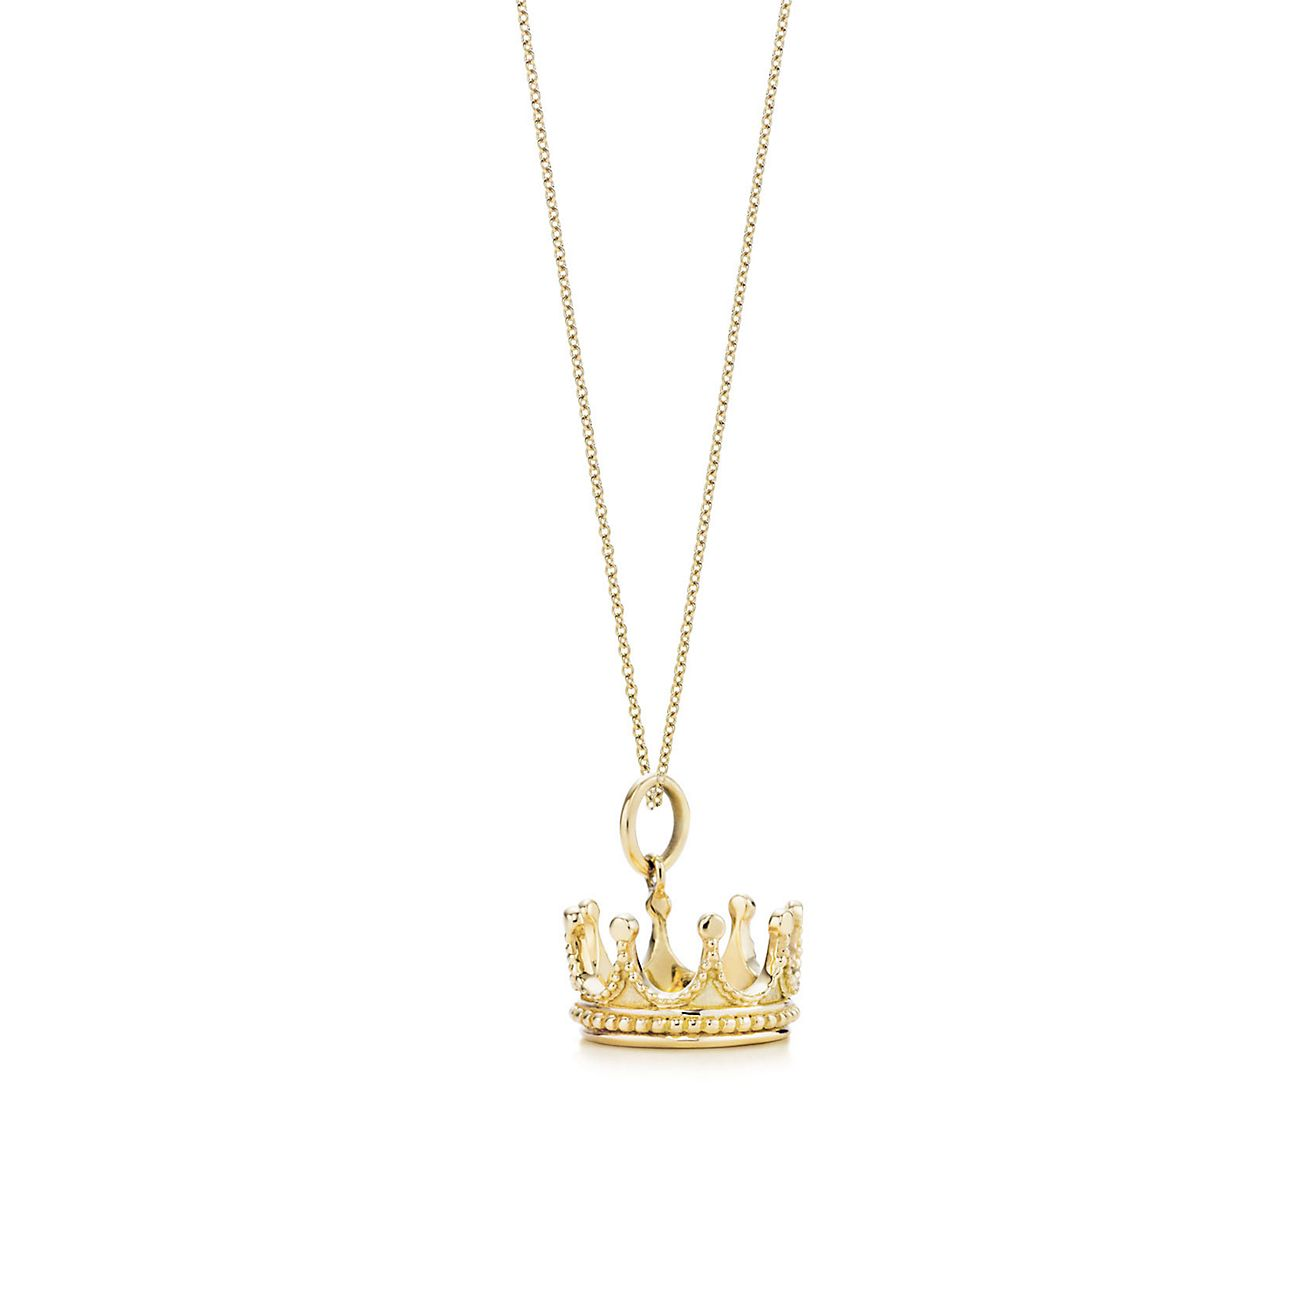 Jewelry Necklaces Pendants Crown Charm And Chain Grp04796 Crown Necklace Tiffany